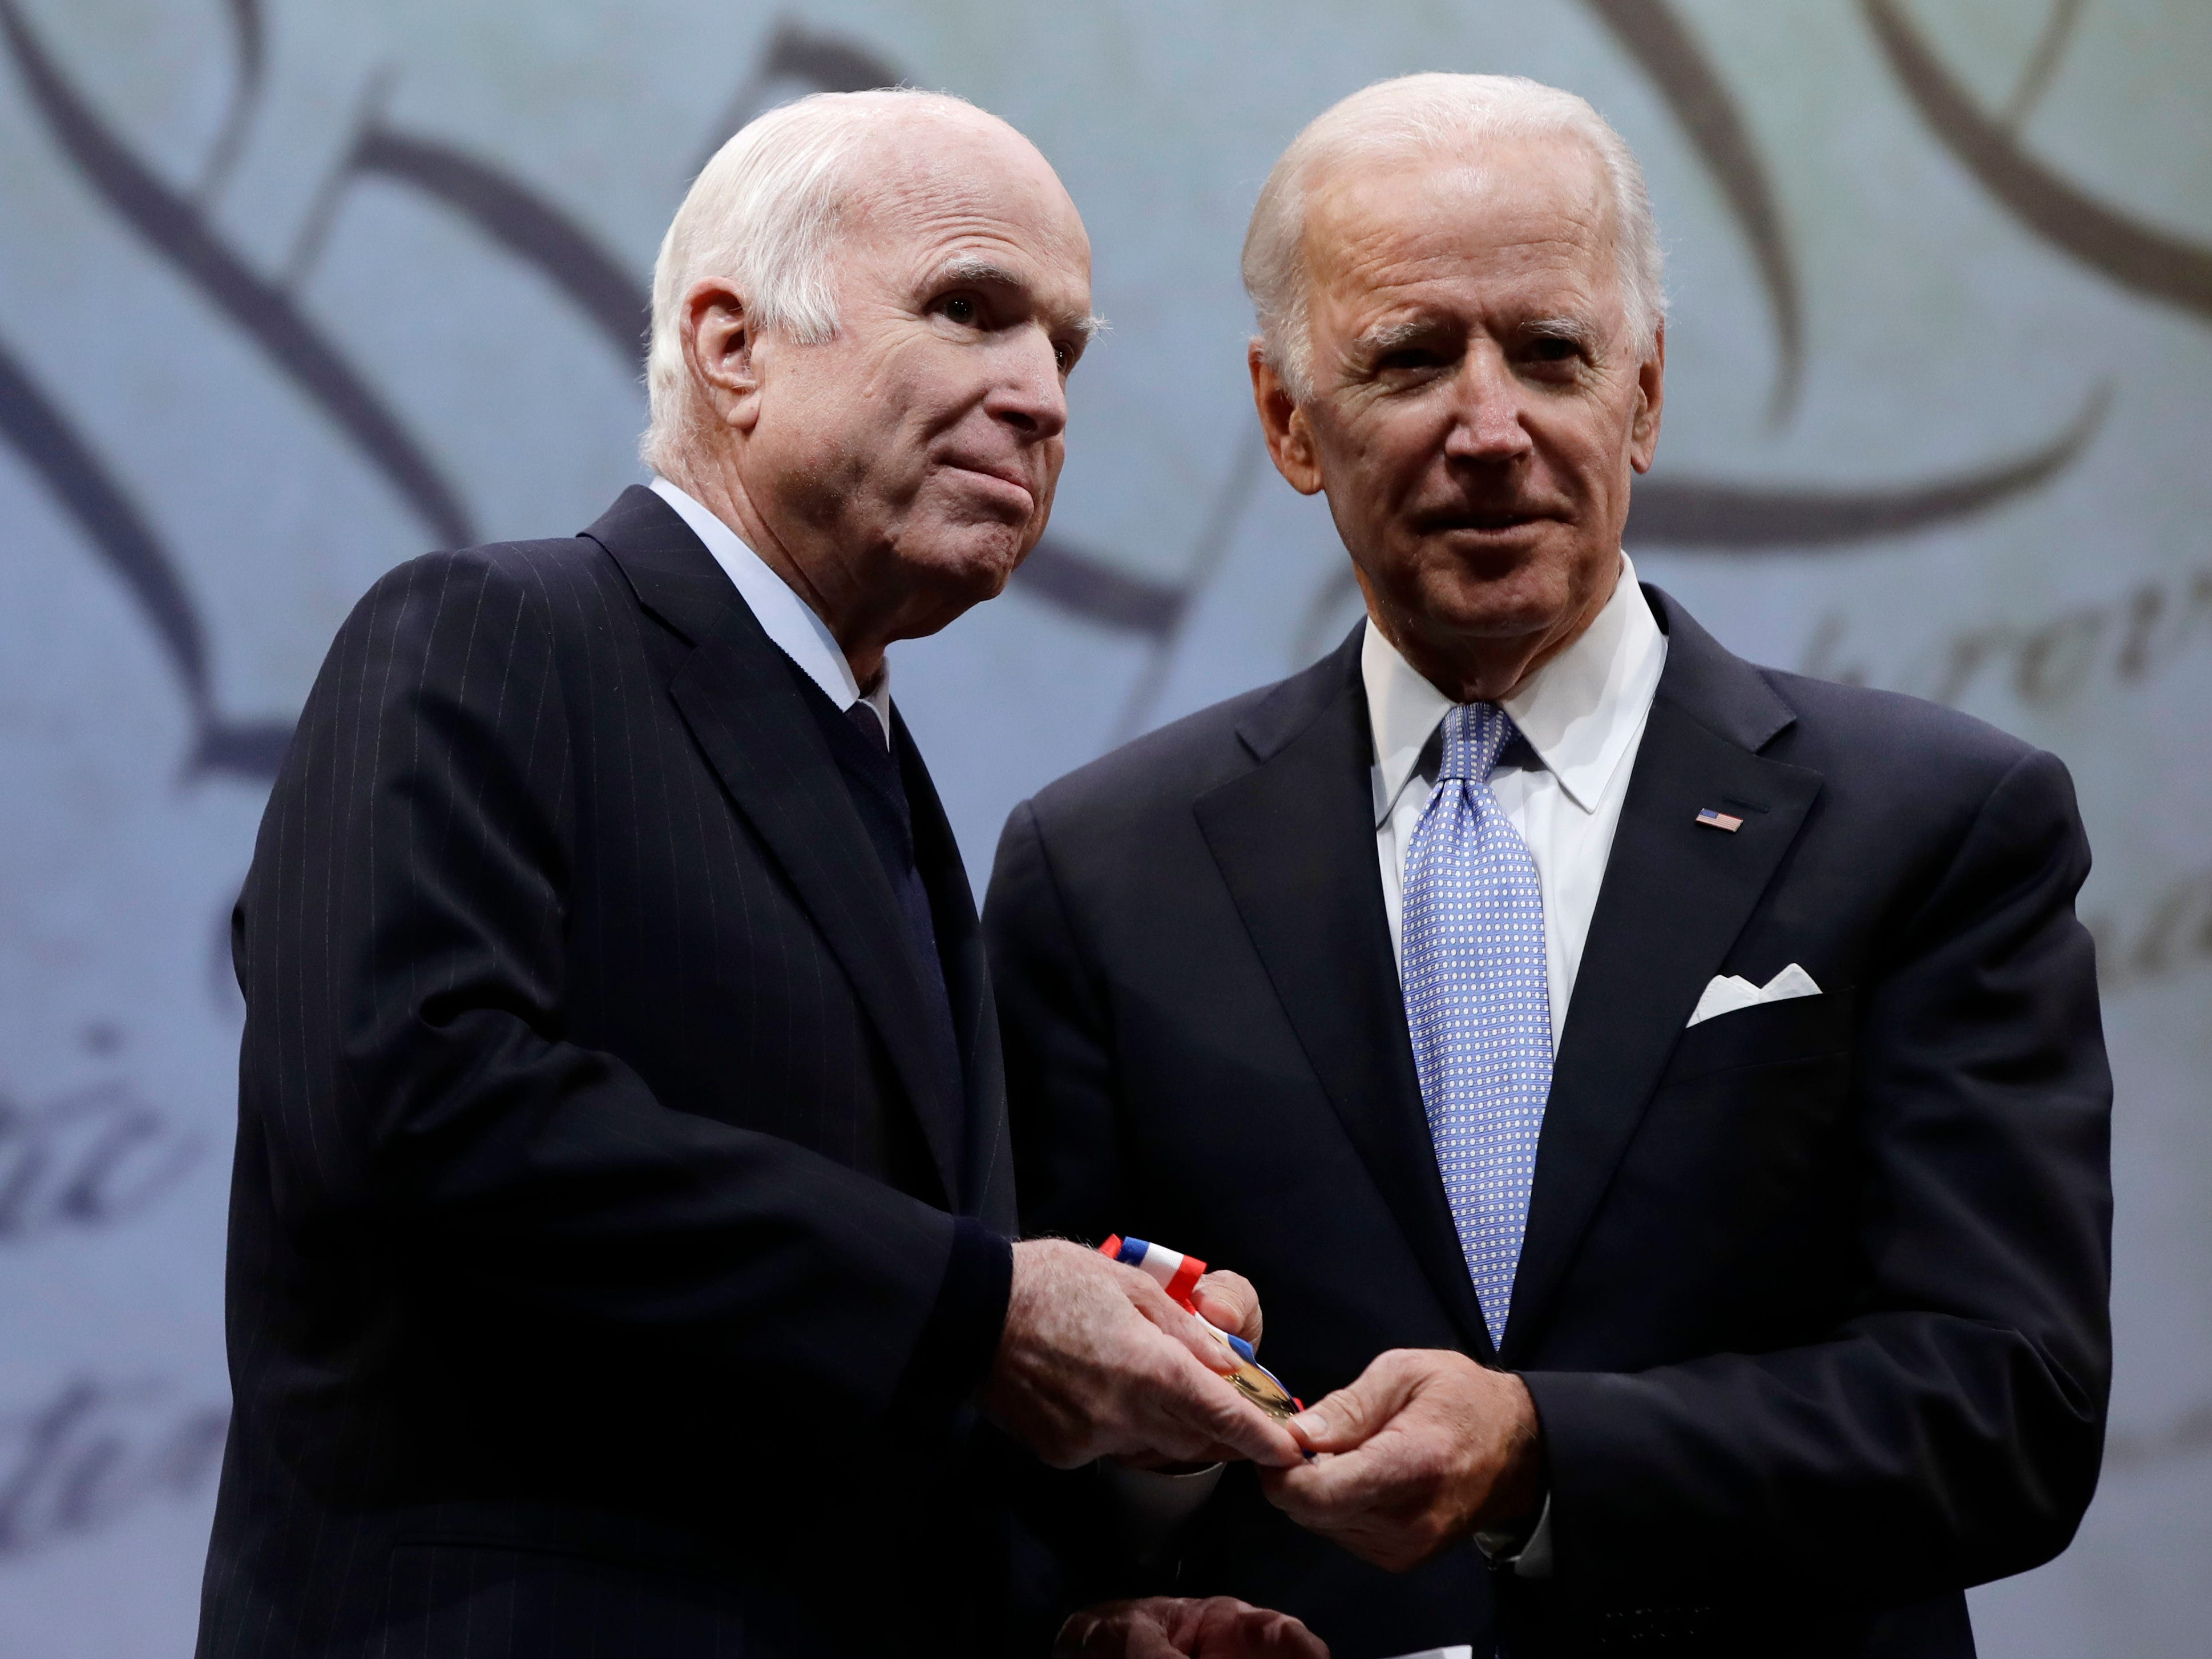 Sen. John McCain, R-Ariz., receives the Liberty Medal from Chair of the National Constitution Center's Board of Trustees, former Vice President Joe Biden in Philadelphia, Monday, Oct. 16, 2017. The honor is given annually to an individual who displays courage and conviction while striving to secure liberty for people worldwide. (AP Photo/Matt Rourke)